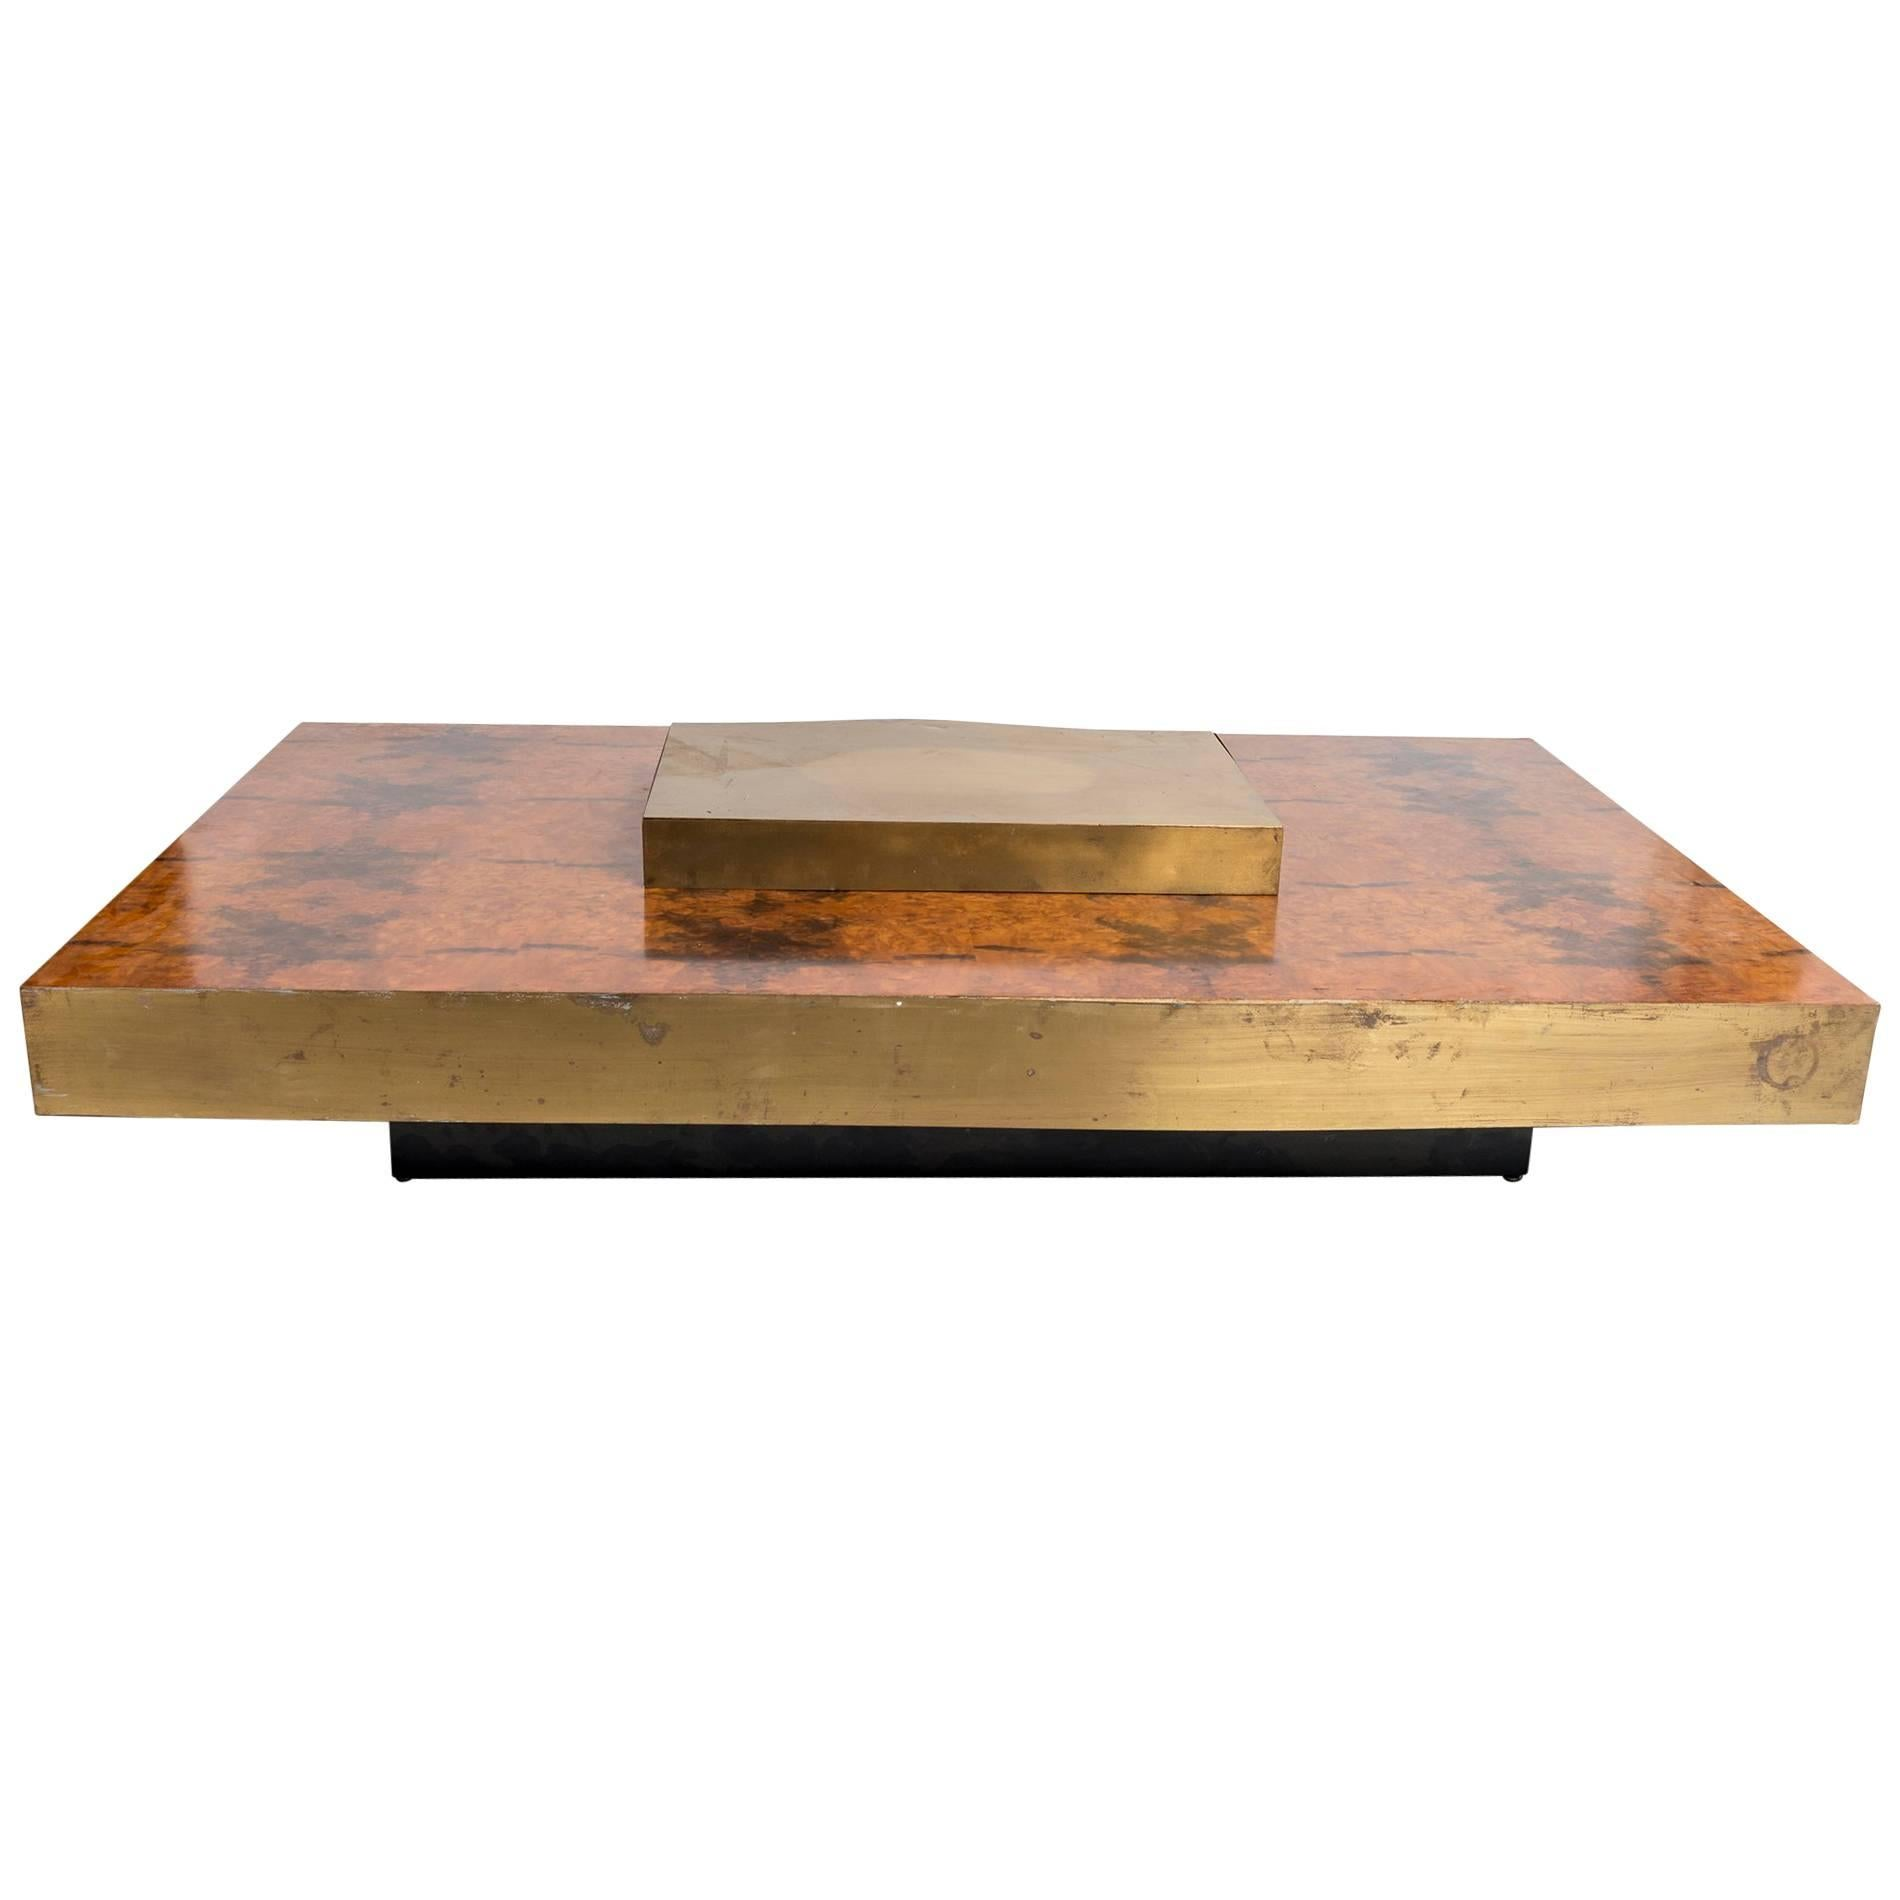 Rectangular Low Brass Center Wooden Coffee Table With Brass Trim For Sale